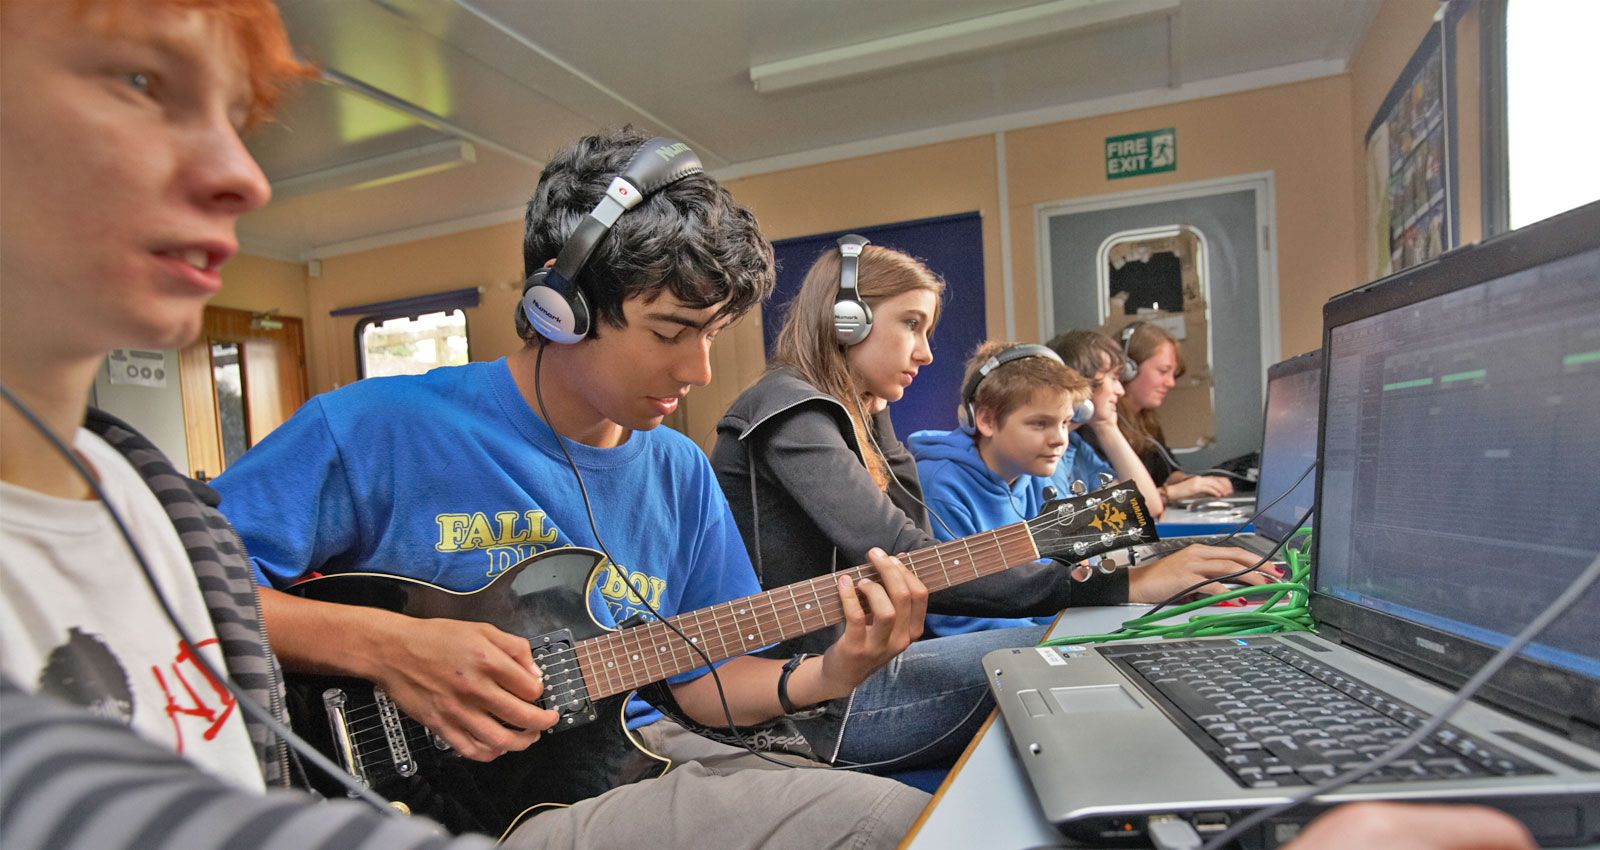 PGL Adventure Holidays - Specialist Holidays for 7-17 year olds across the UK and France - Creative Kids - Music Studio